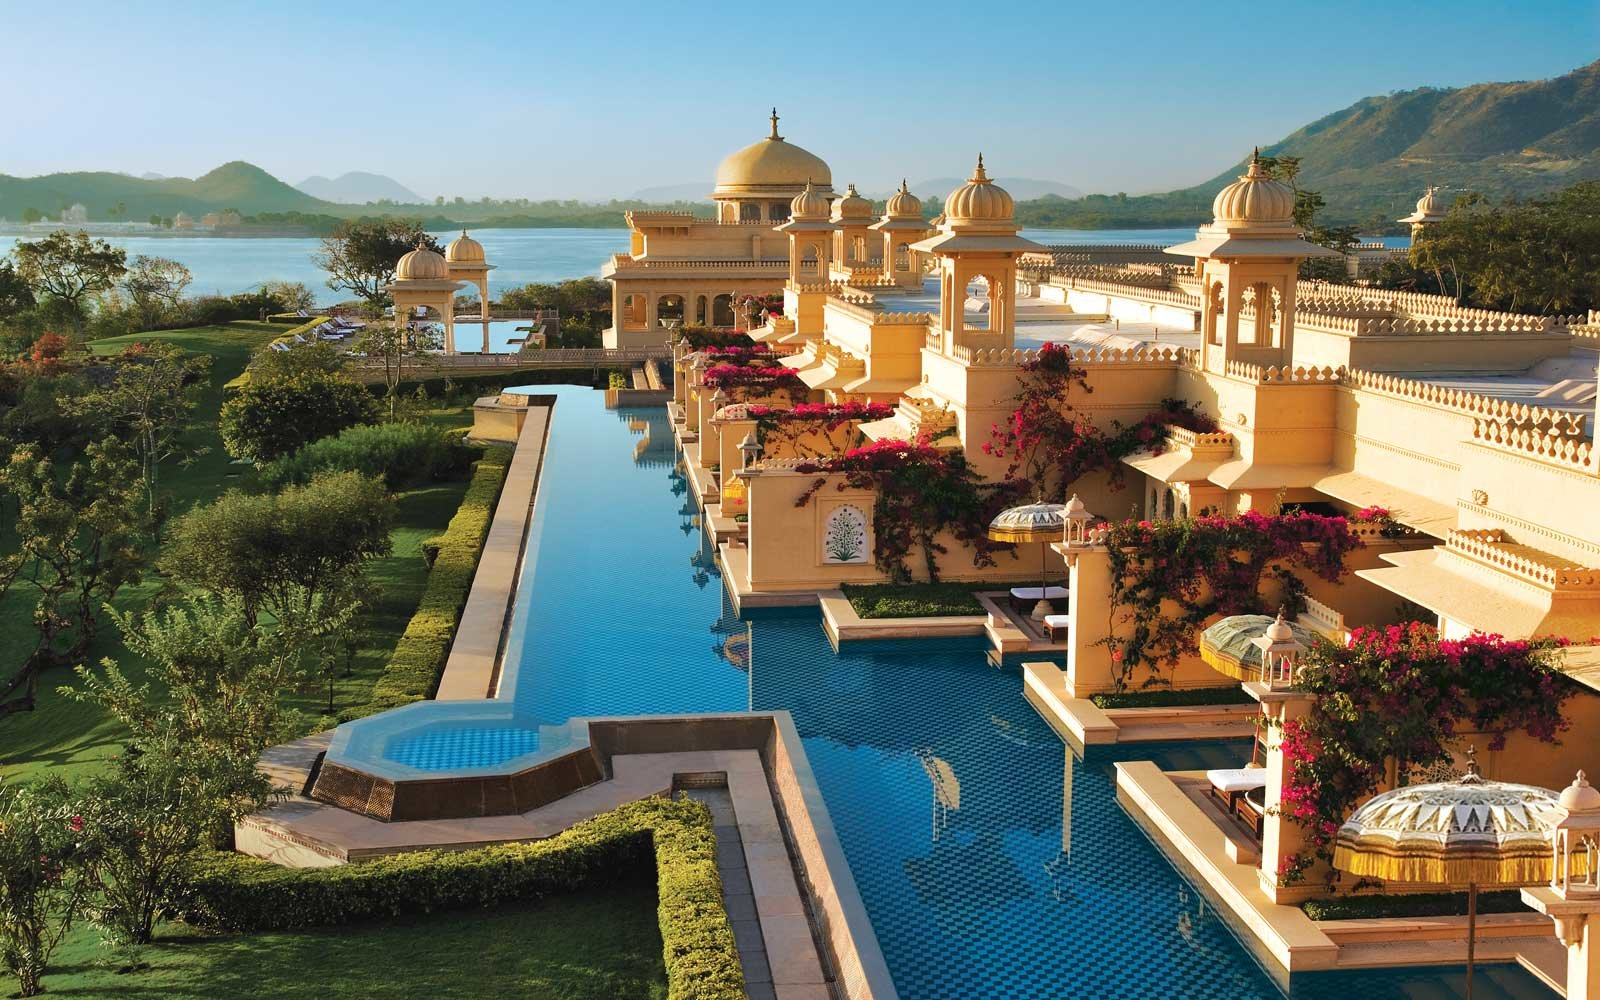 Sunrise over the deluxe rooms with semi private pool at the ultra luxurious Udaivilas Oberoi Hotel. Udaipur.